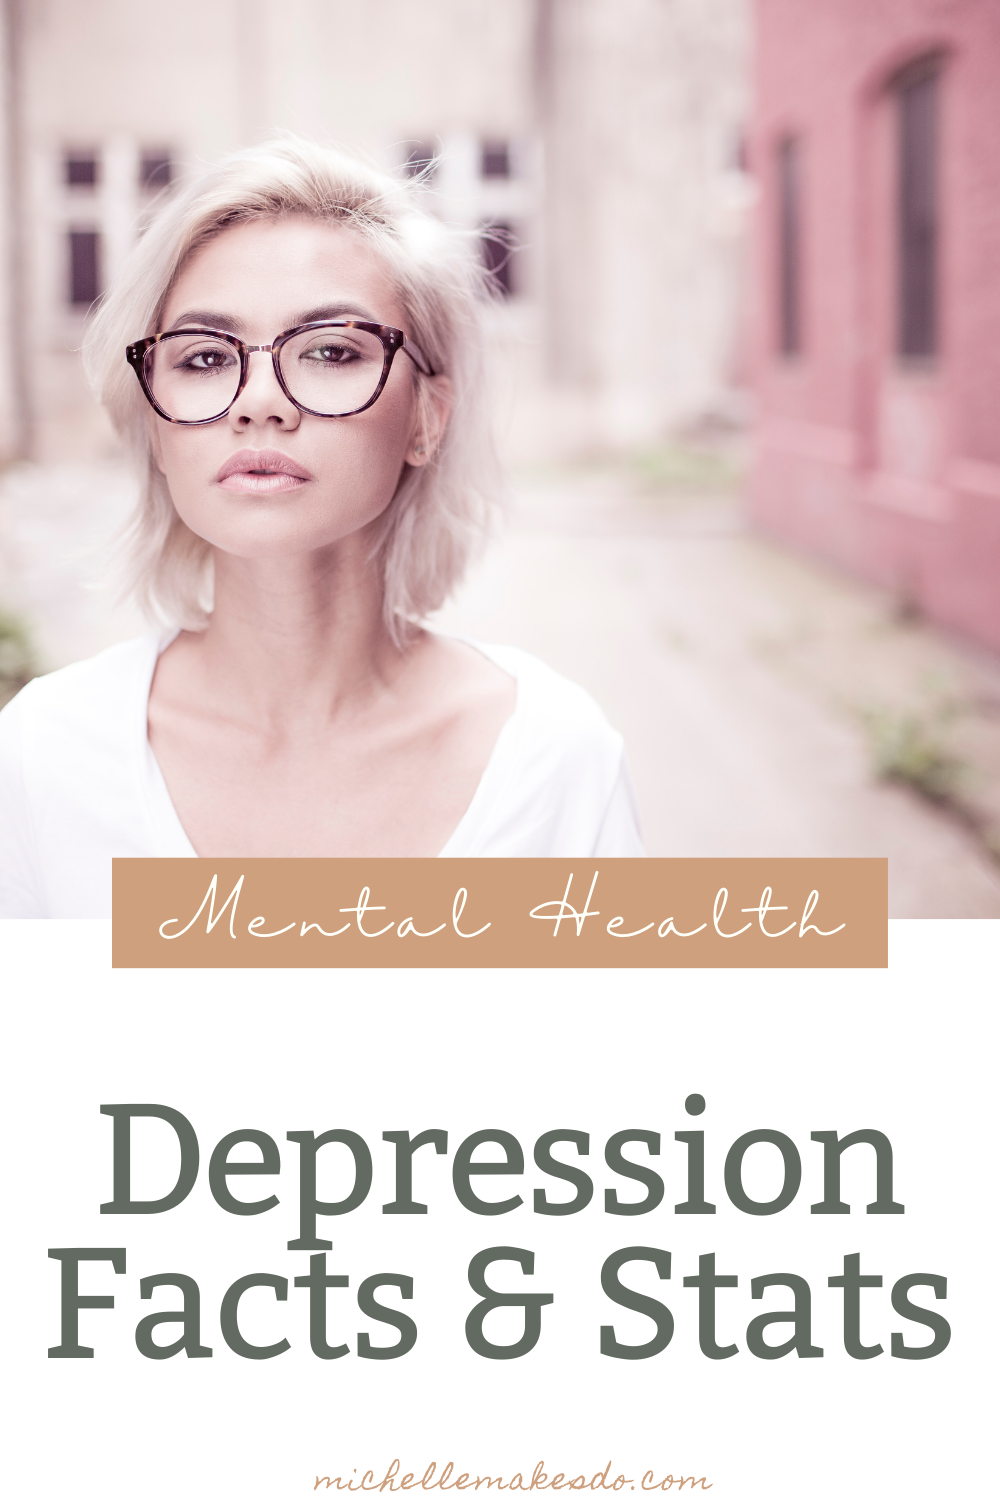 Depression Facts & Stats